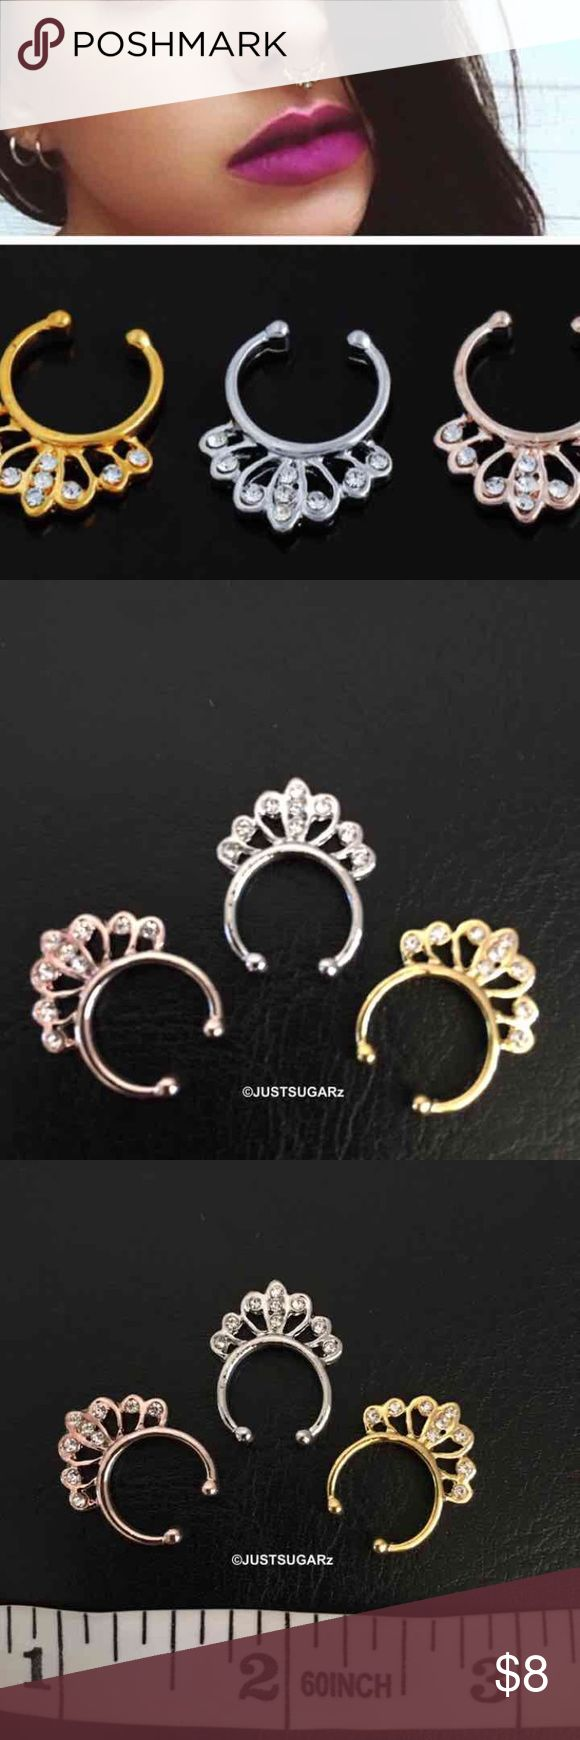 """(1) bull nose ring hoop non piercing Material: alloy/crystal ---no piercing   Colors available: silver, gold and rose gold   Look fabulous every day of the year. Wear them with a fancy outfit on a special night or casually ...Septum nose rings without having to actually pierce your nose!!!   Item does not have """"tags"""" but it sealed in plastic. Never used...brand new.  Please keep in mind that it is the holidays. Thank you. Jewelry Rings"""